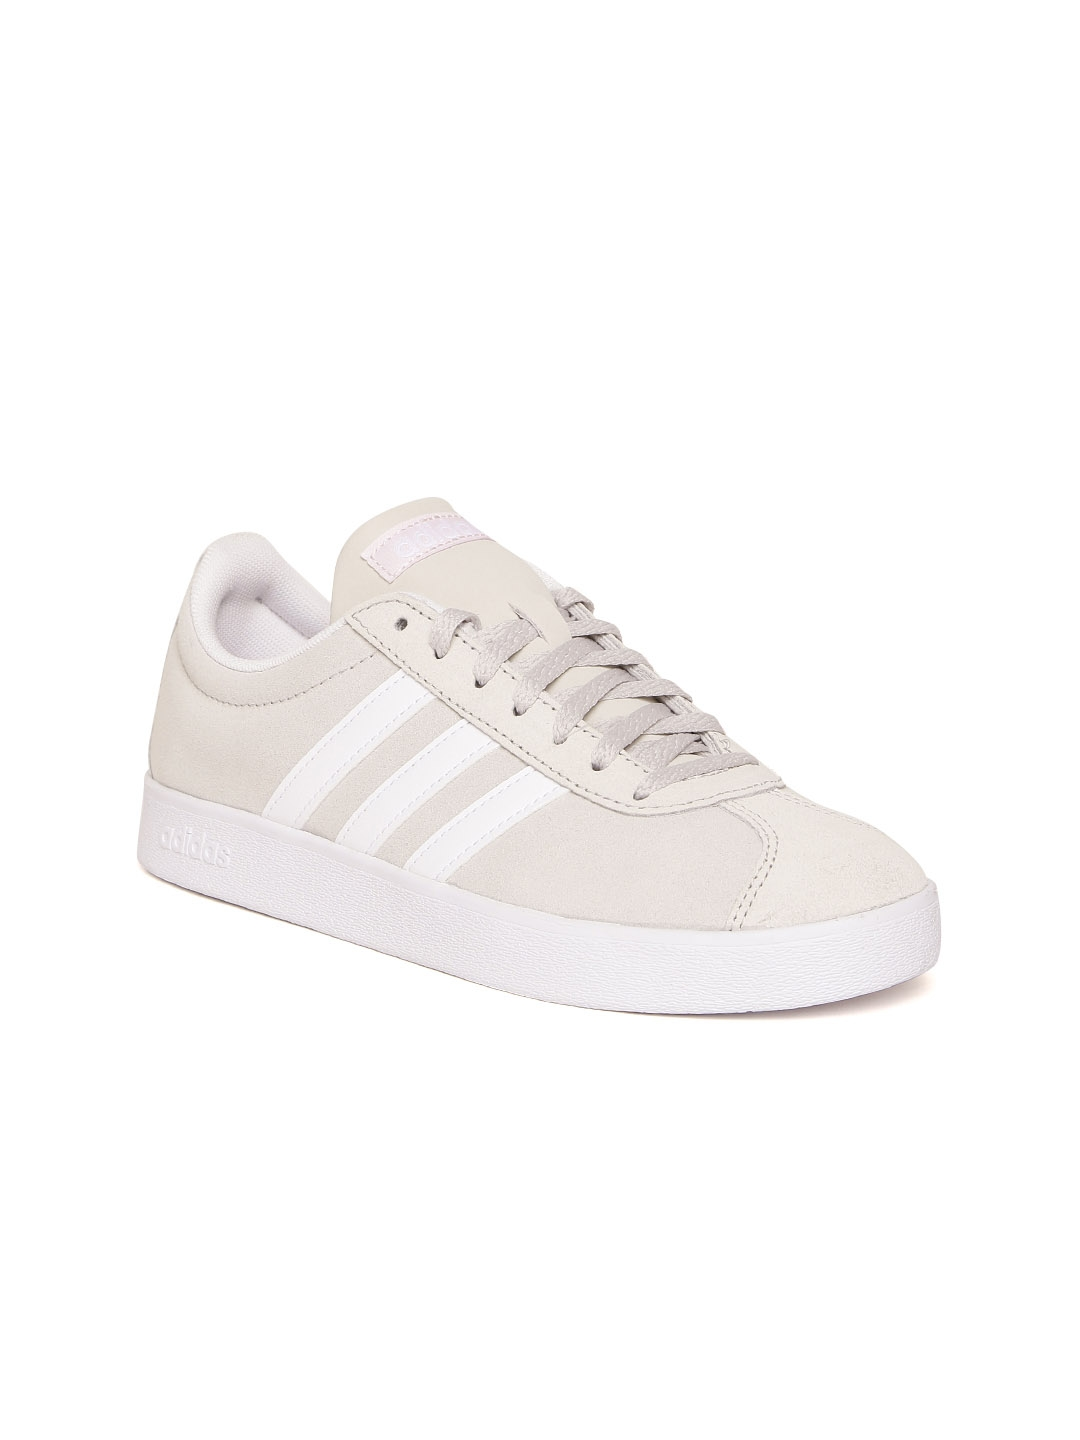 new products 5e023 846c6 11517464589580-Women-Adidas-Sports-Shoes-VL-COURT-20-1831517464589491-1.jpg